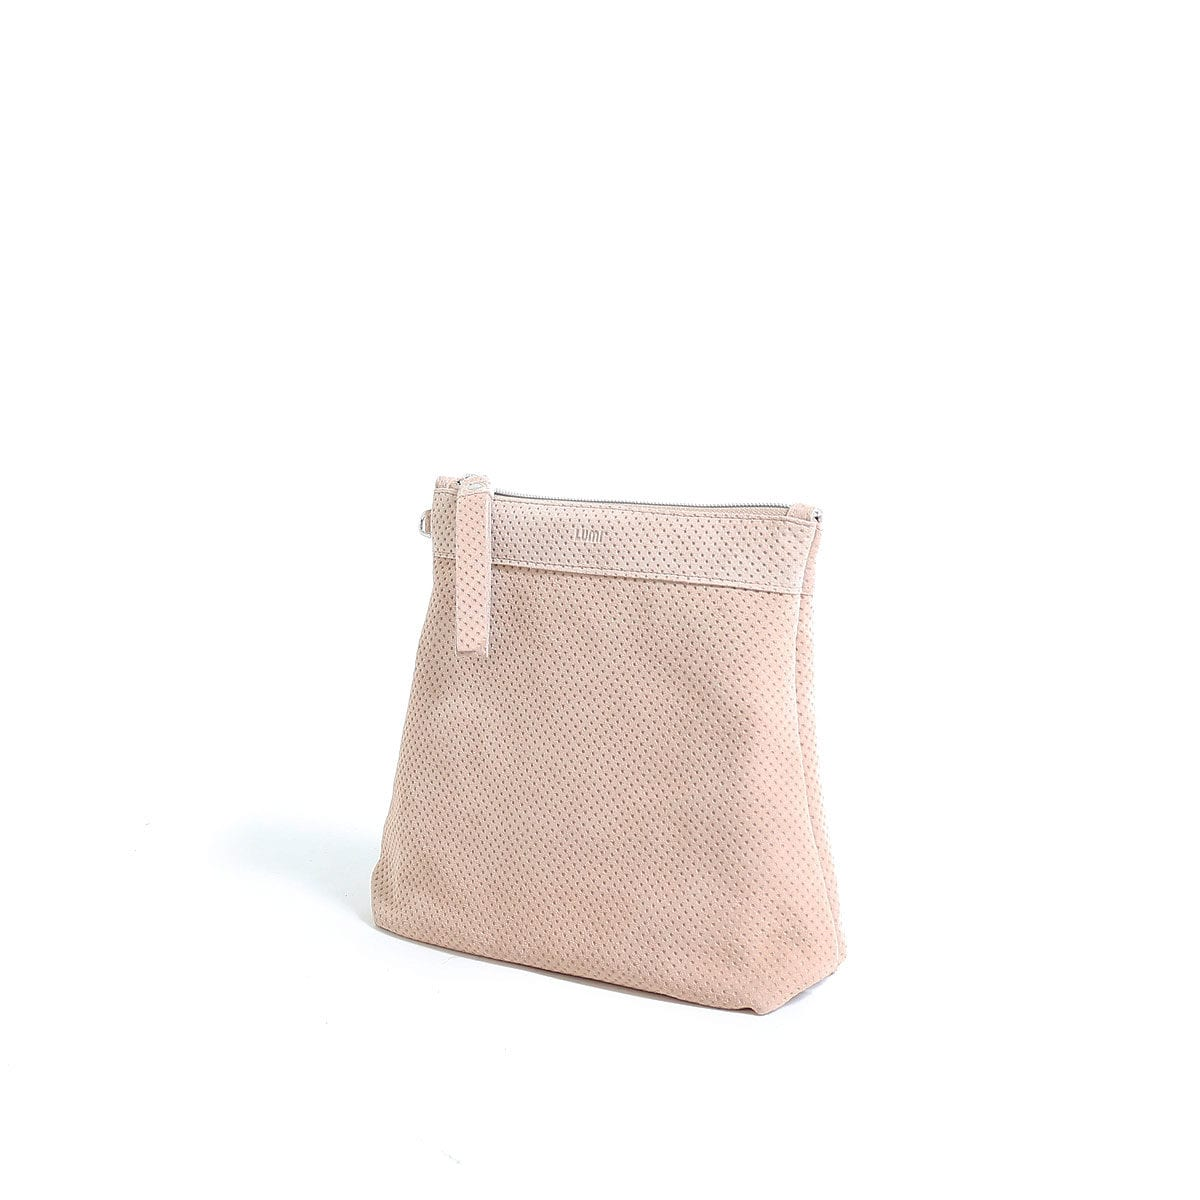 LUMI Destination Folding Pouch, color beige